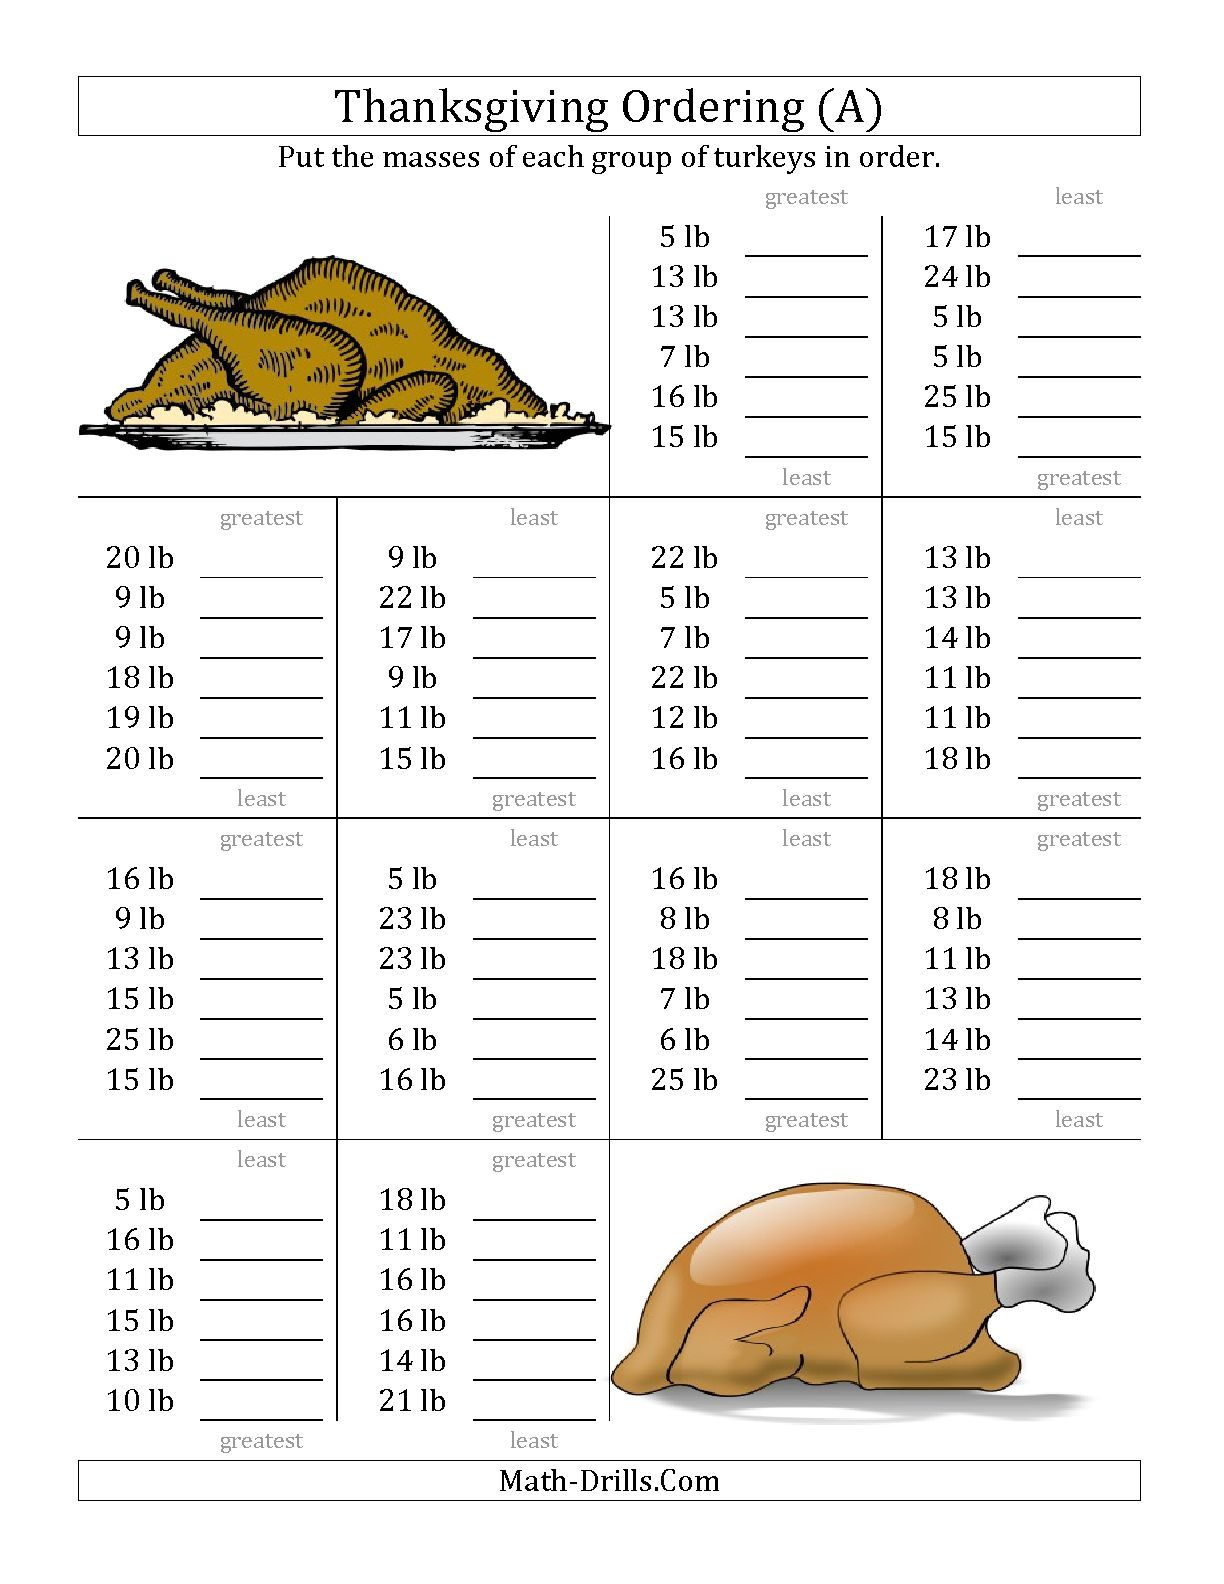 The Ordering Turkey Masses In Pounds A Math Worksheet